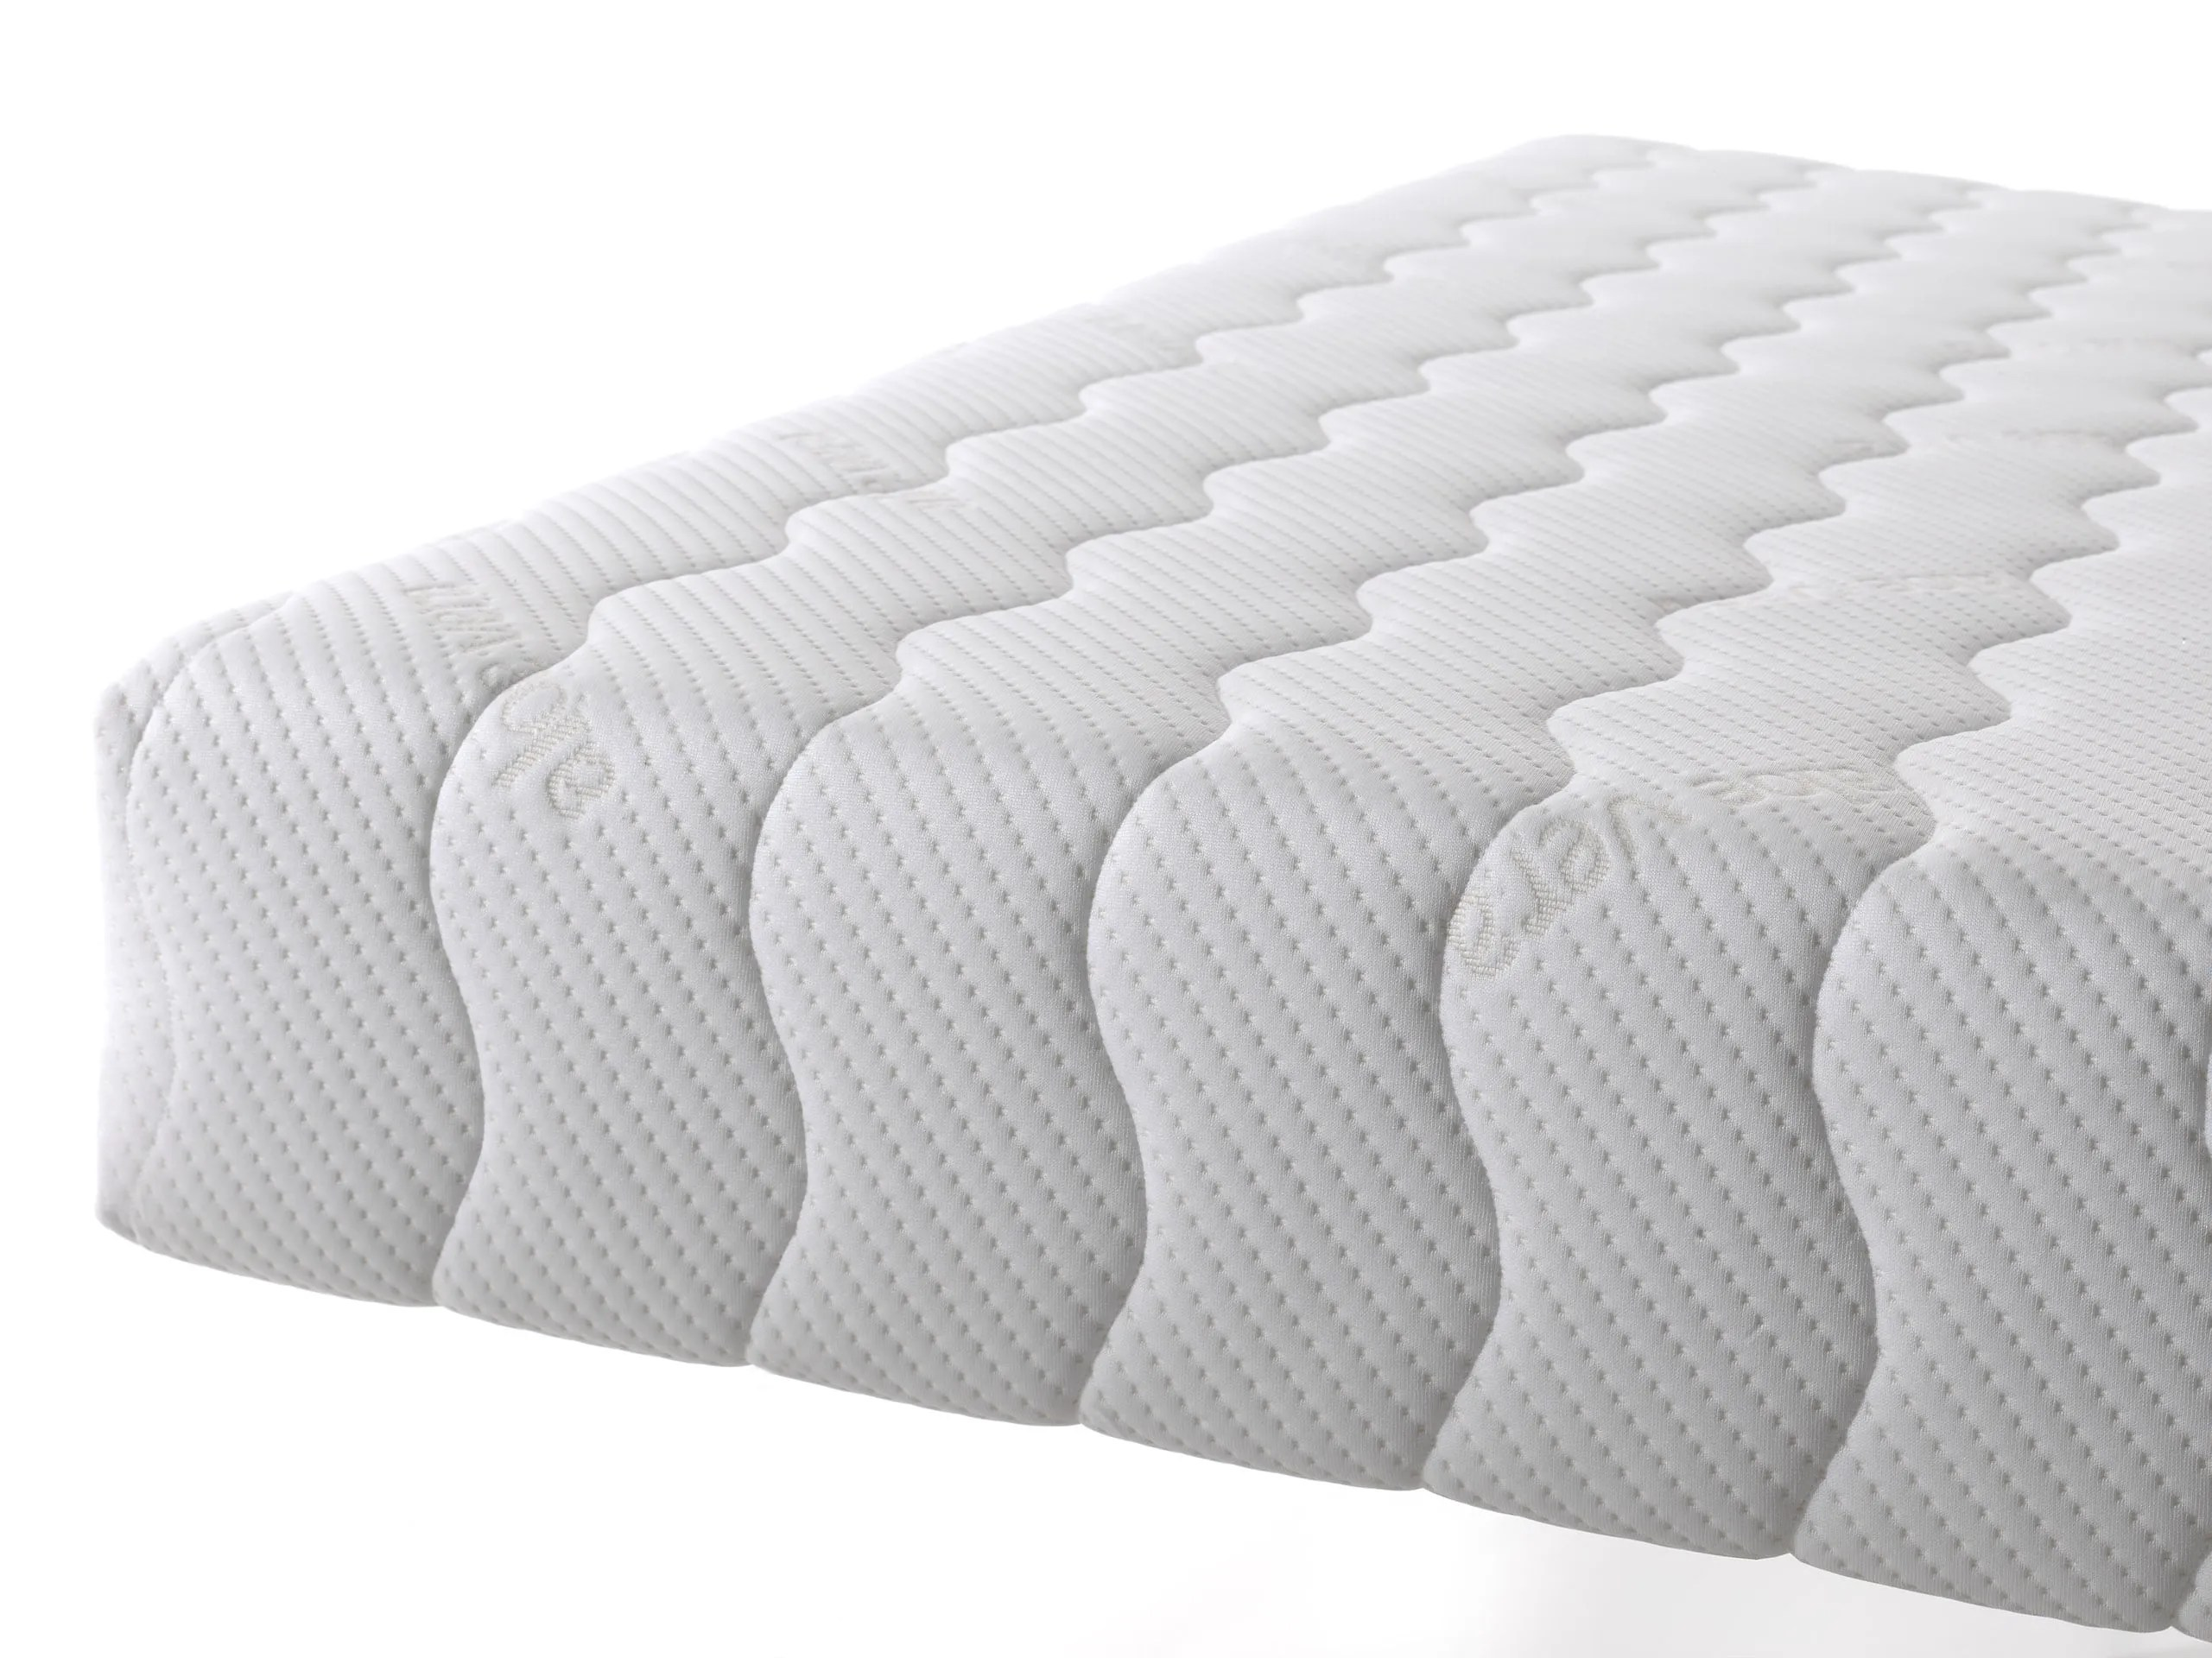 Hr foam matras moltyfoam molty foam online